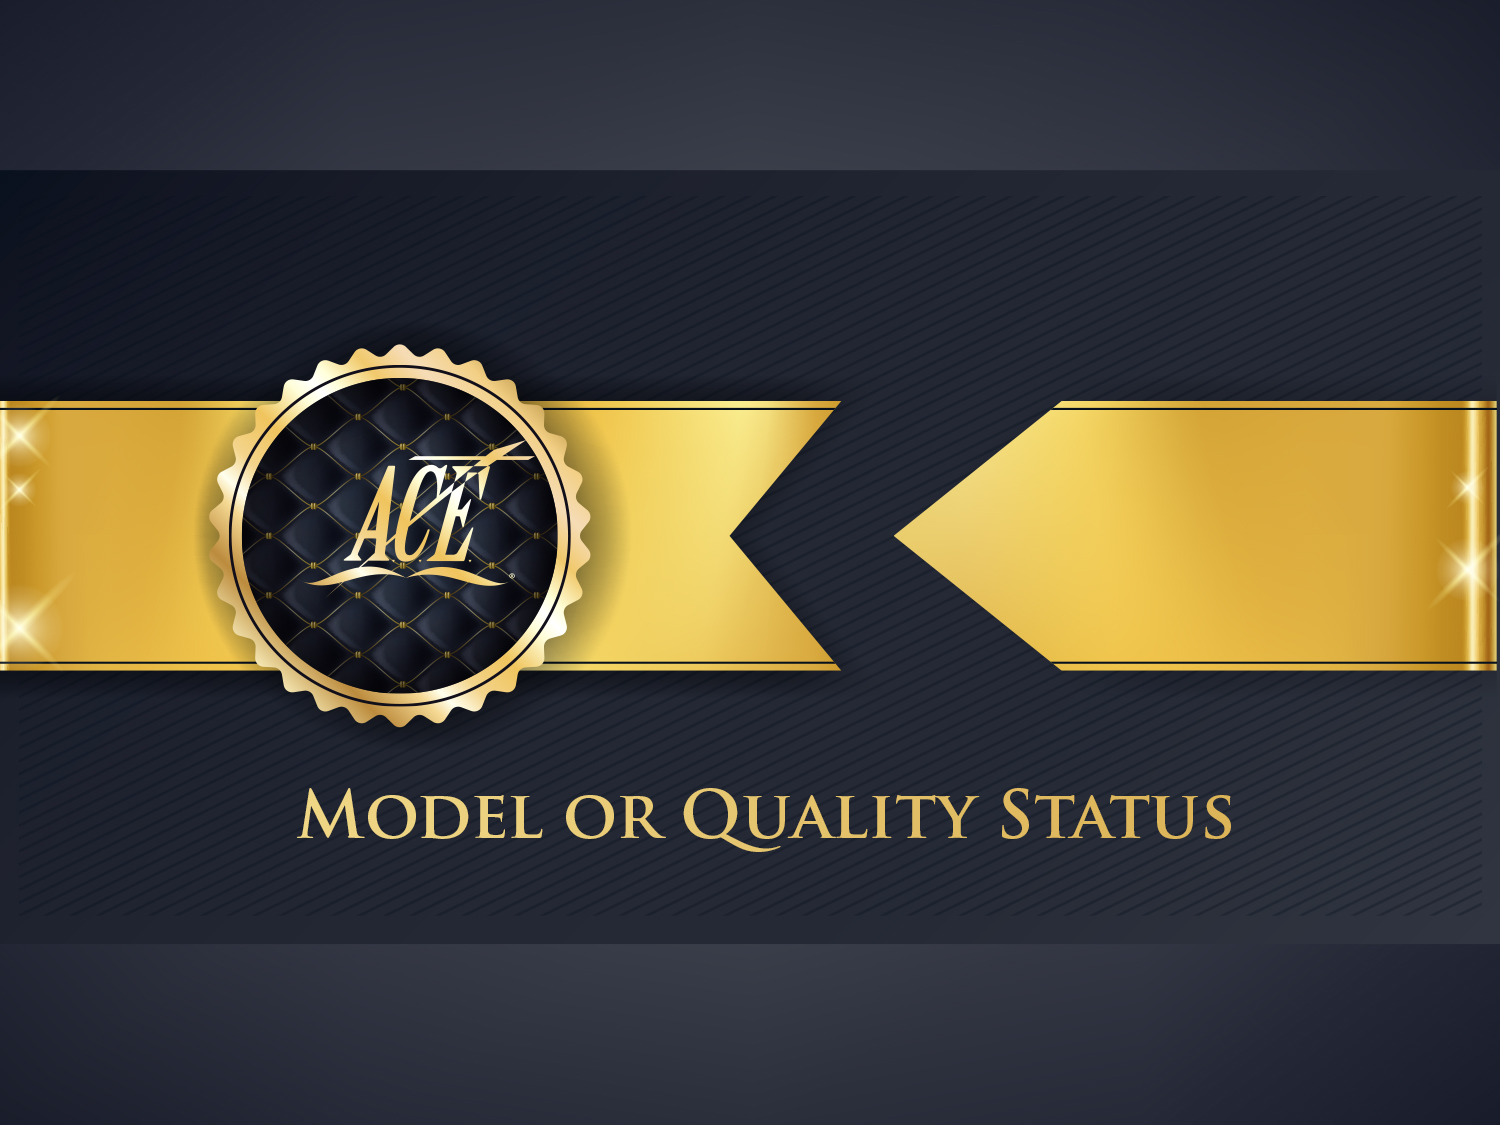 Model or Quality Status